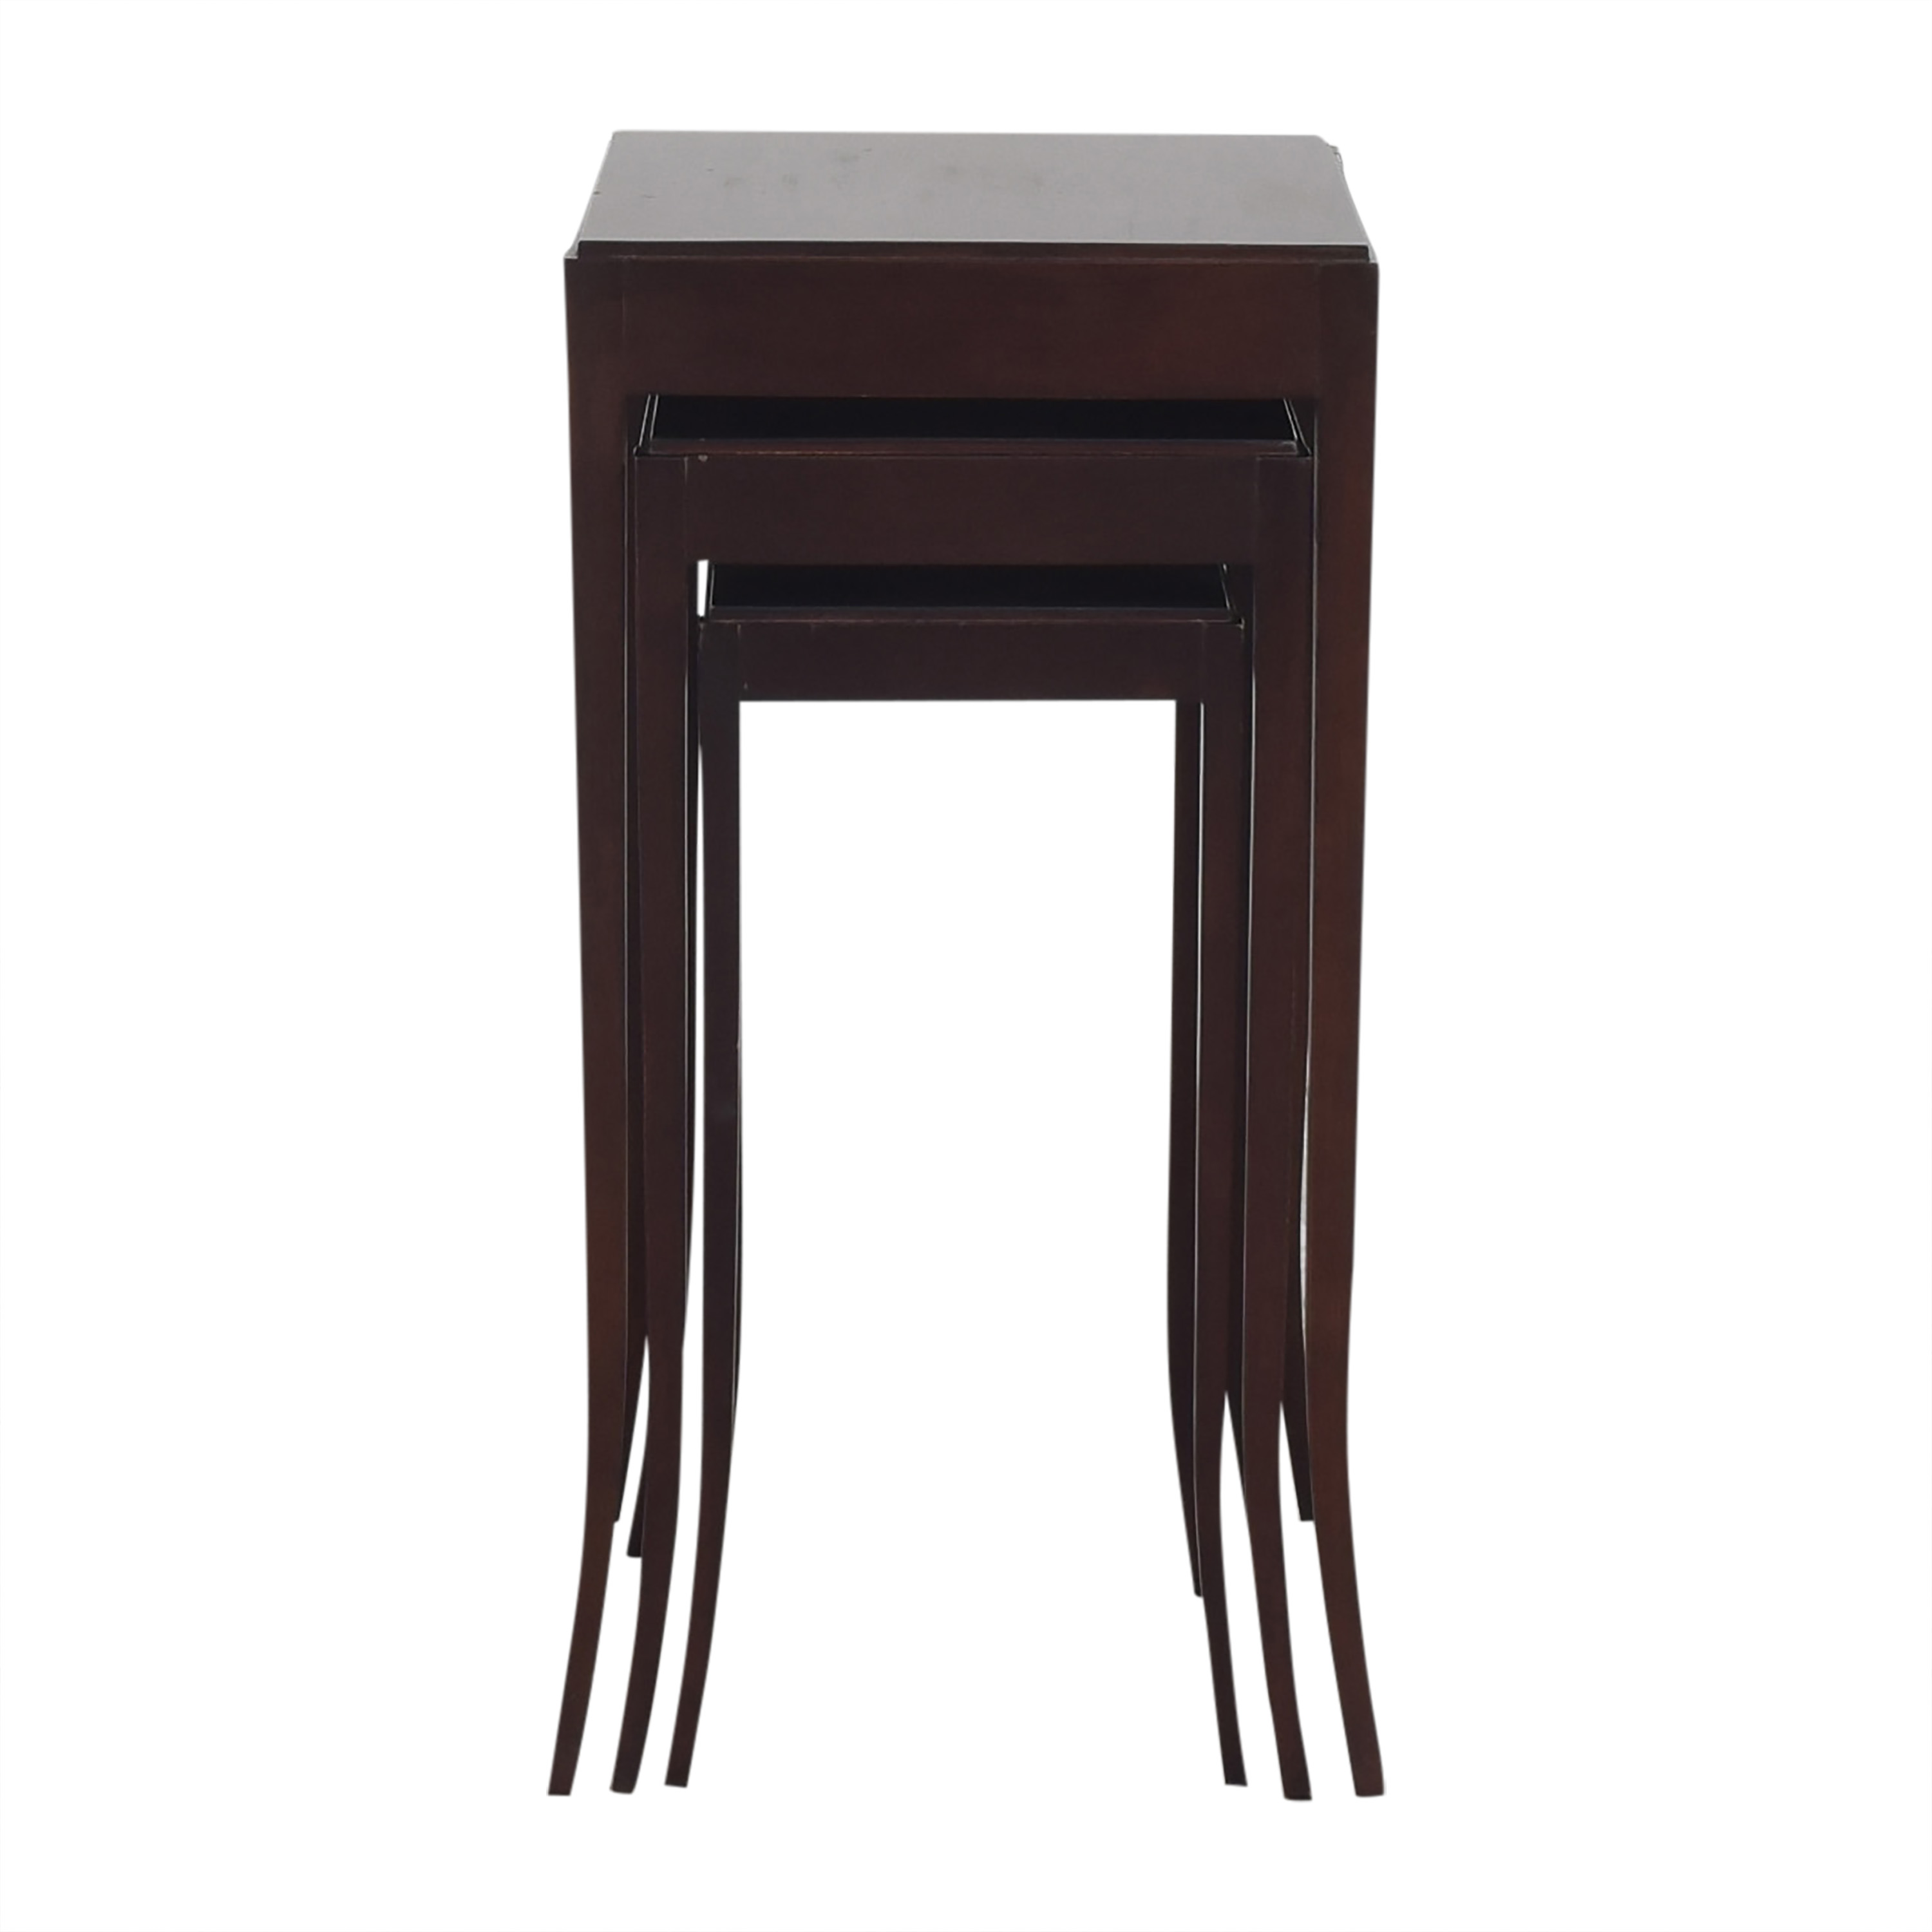 Baker Furniture Baker Nesting Tables by Barbara Barry discount